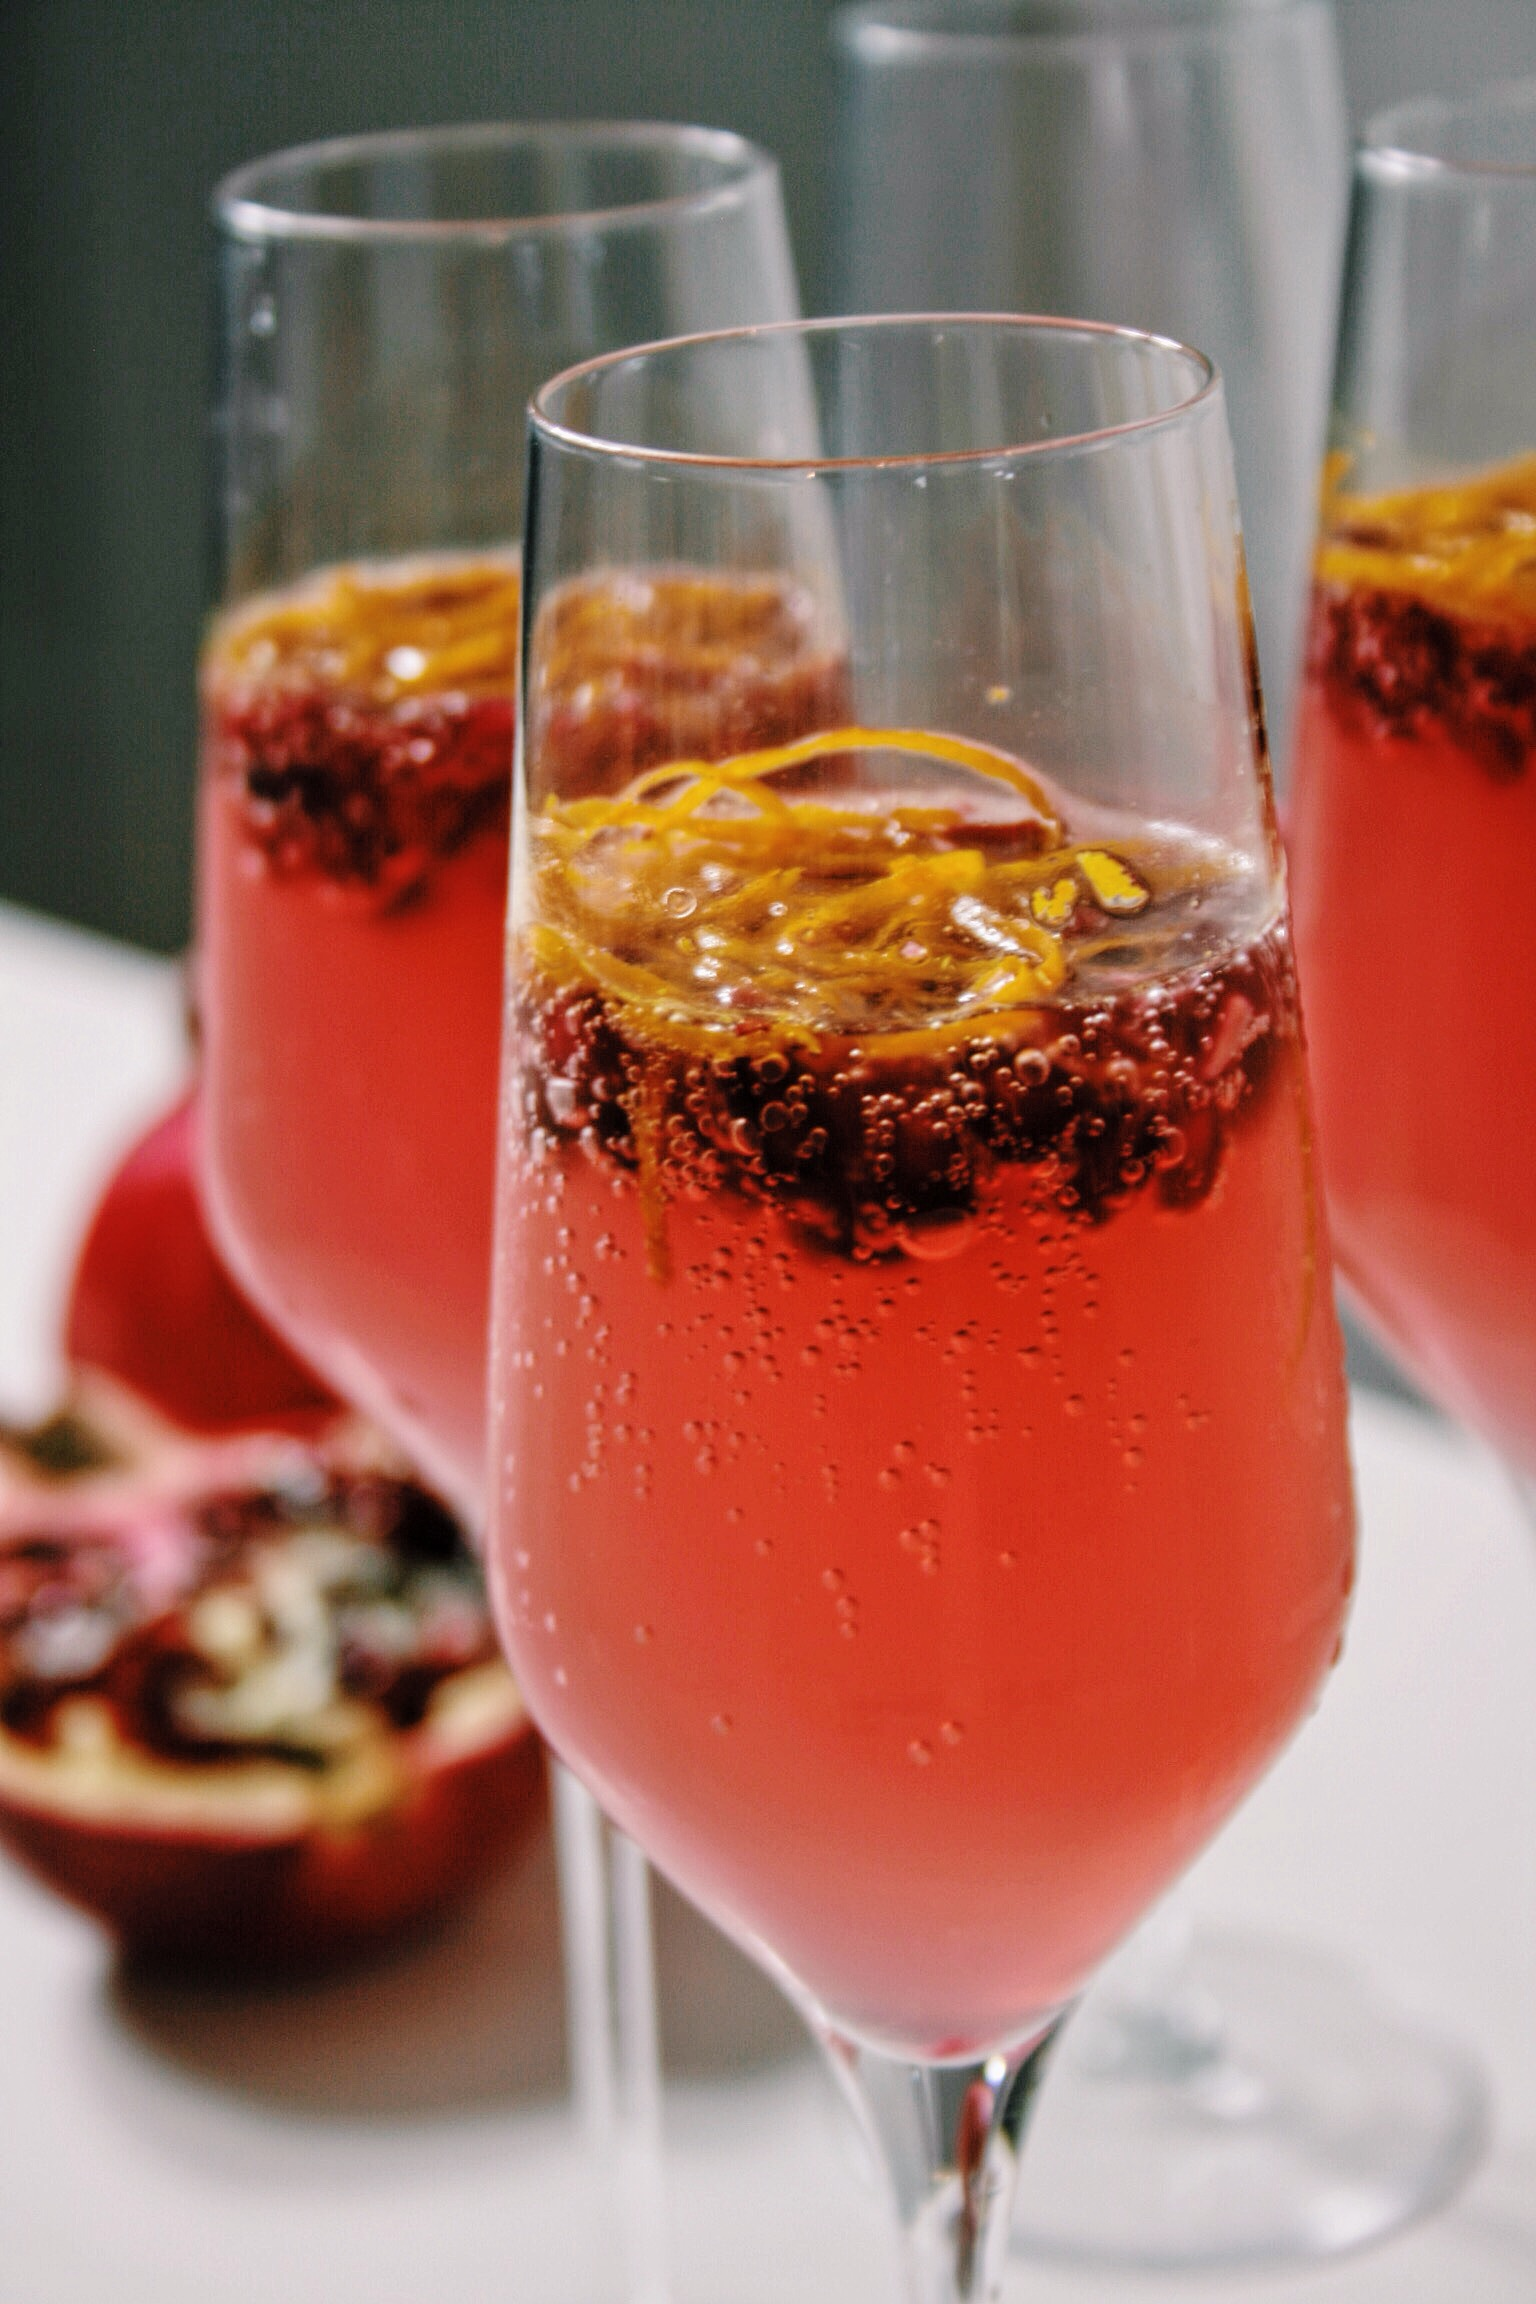 Welkomstdrankje Recept Prosecco Cocktail Met Gin Granaatappel Nina Loves Food